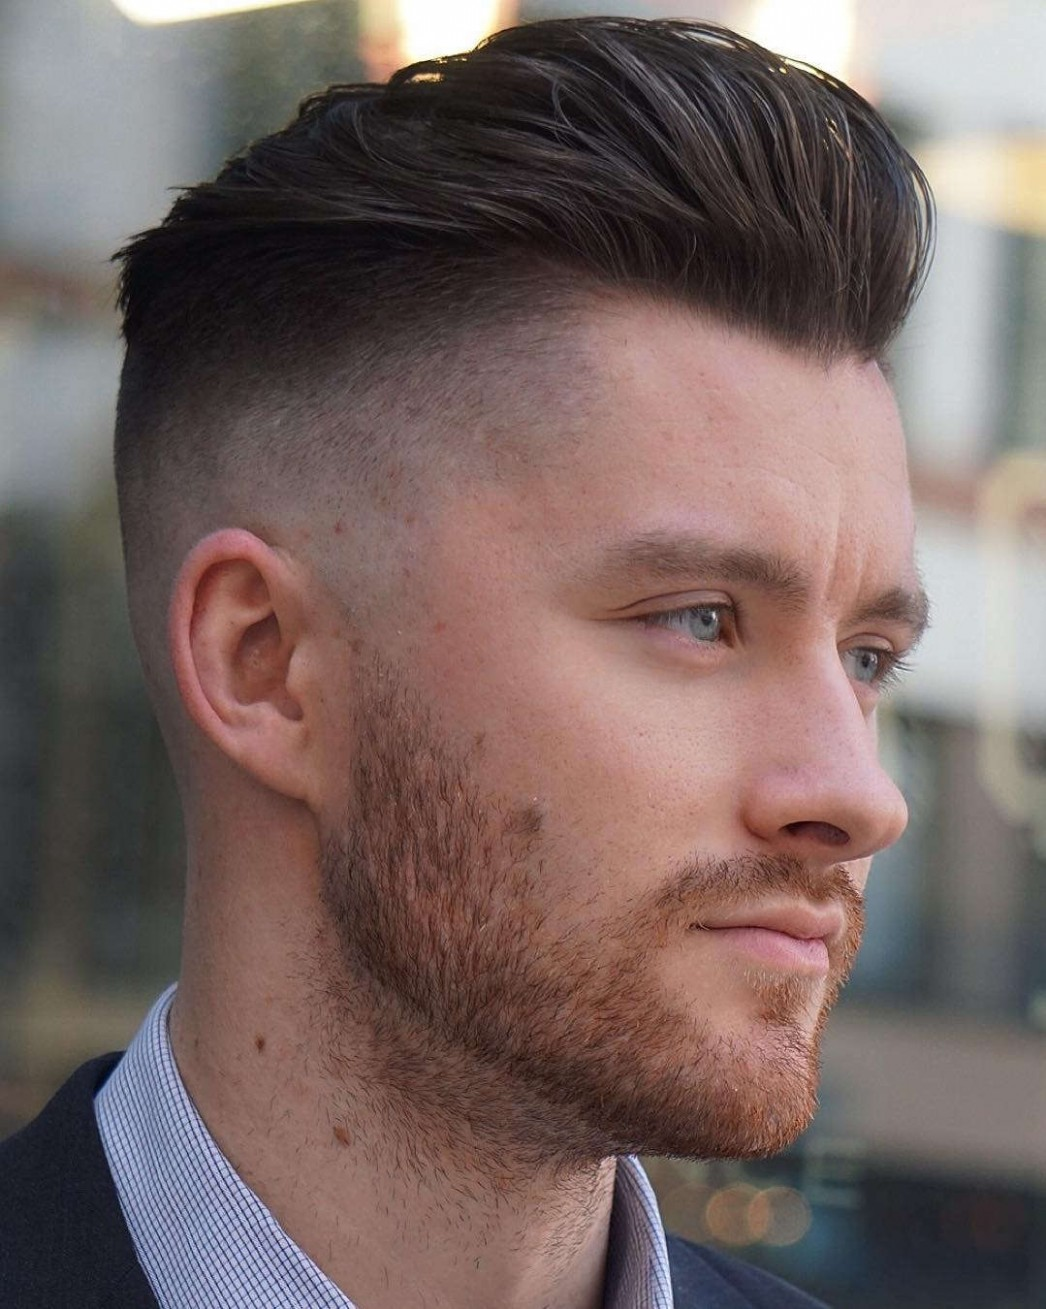 12 Stylish Undercut Hairstyle Variations To Copy In 12: A Short Undercut Men